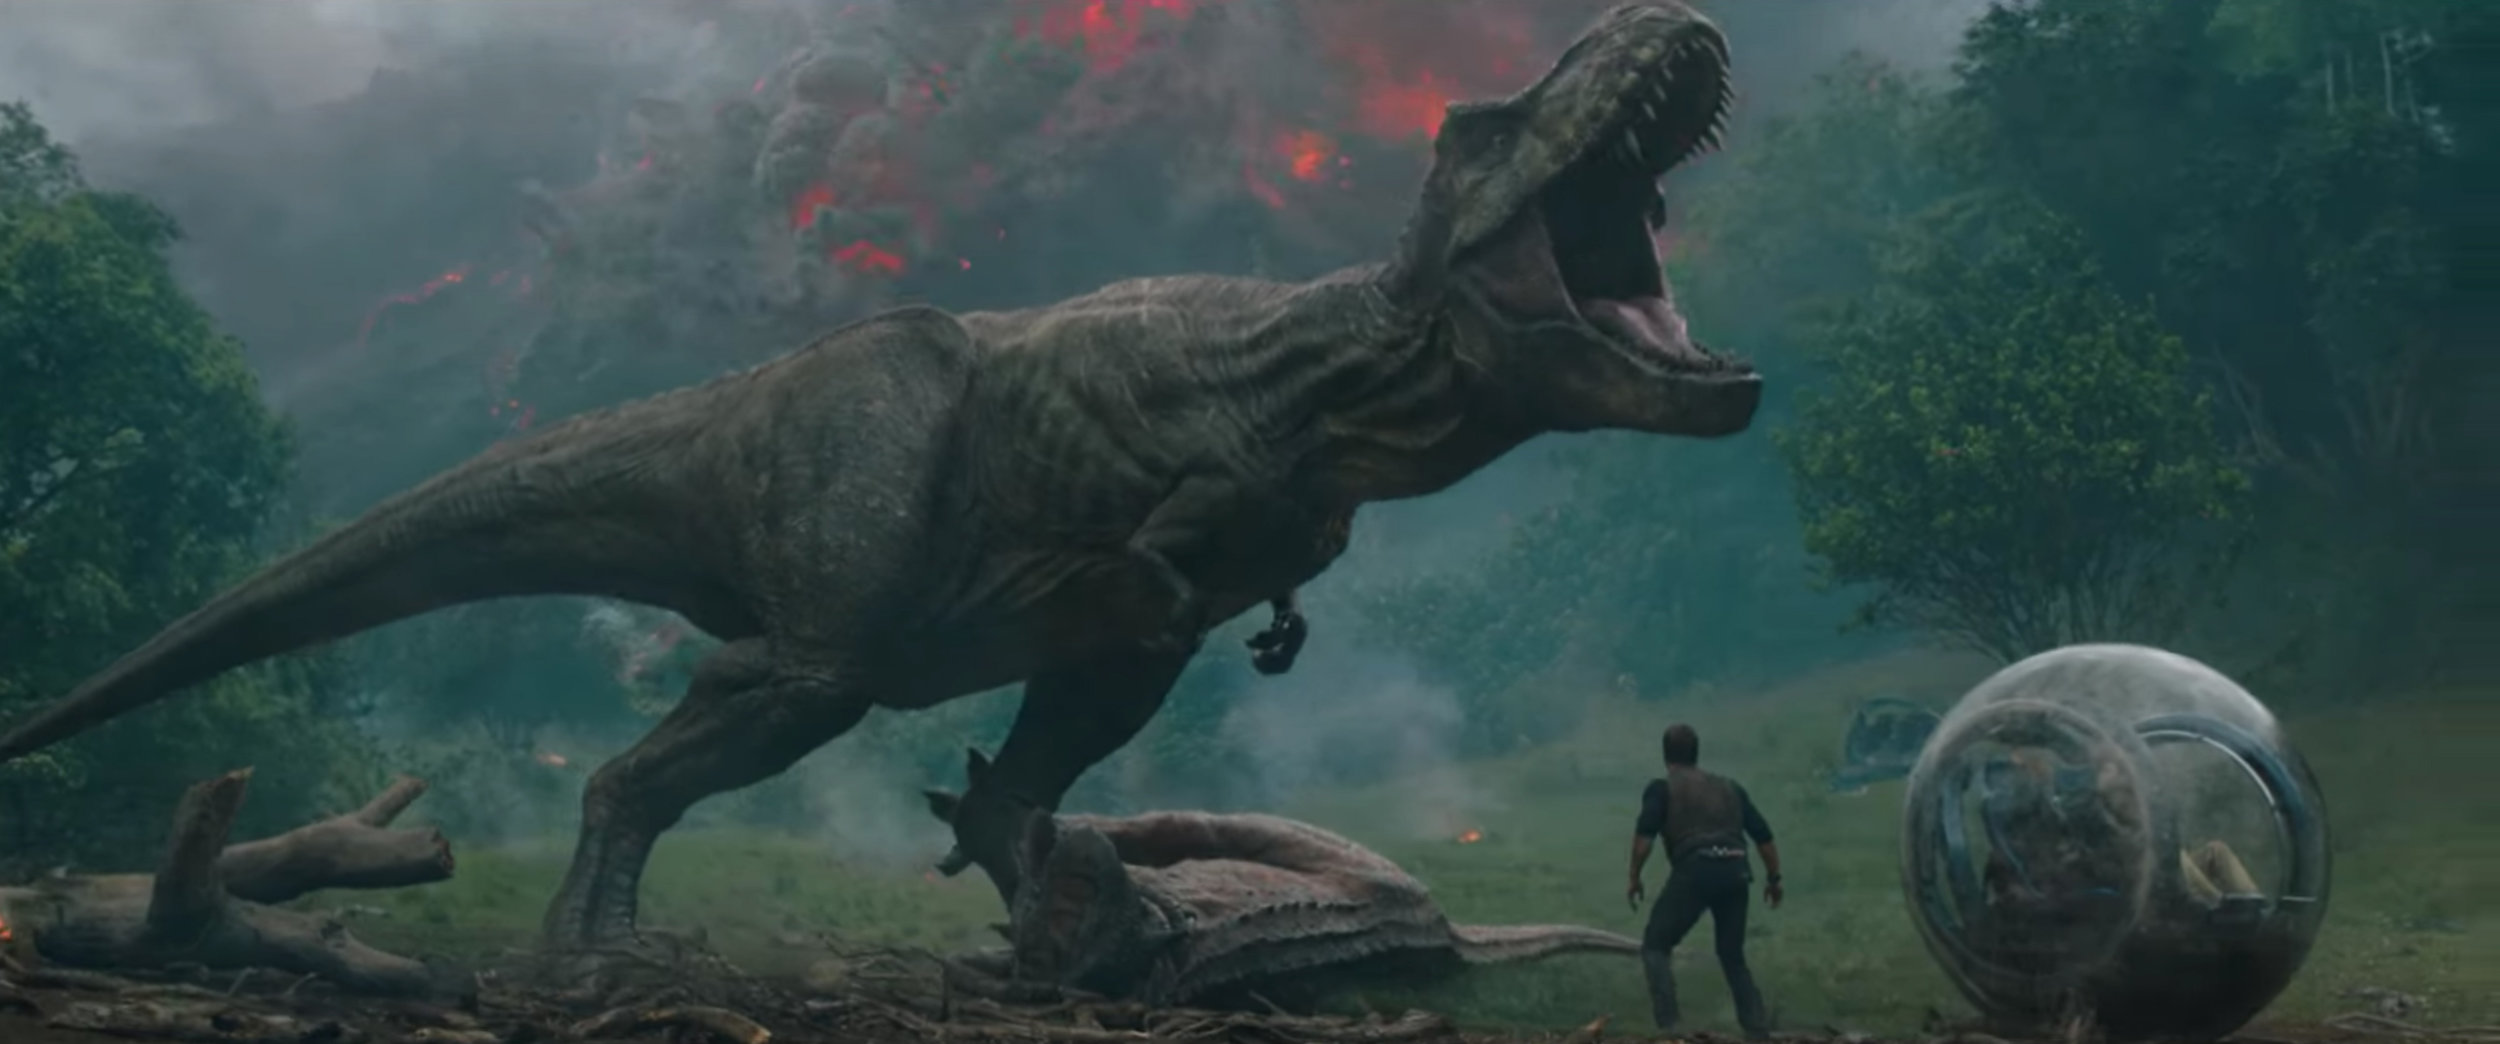 Phil-Earnest-Jurassic-World-2.jpg